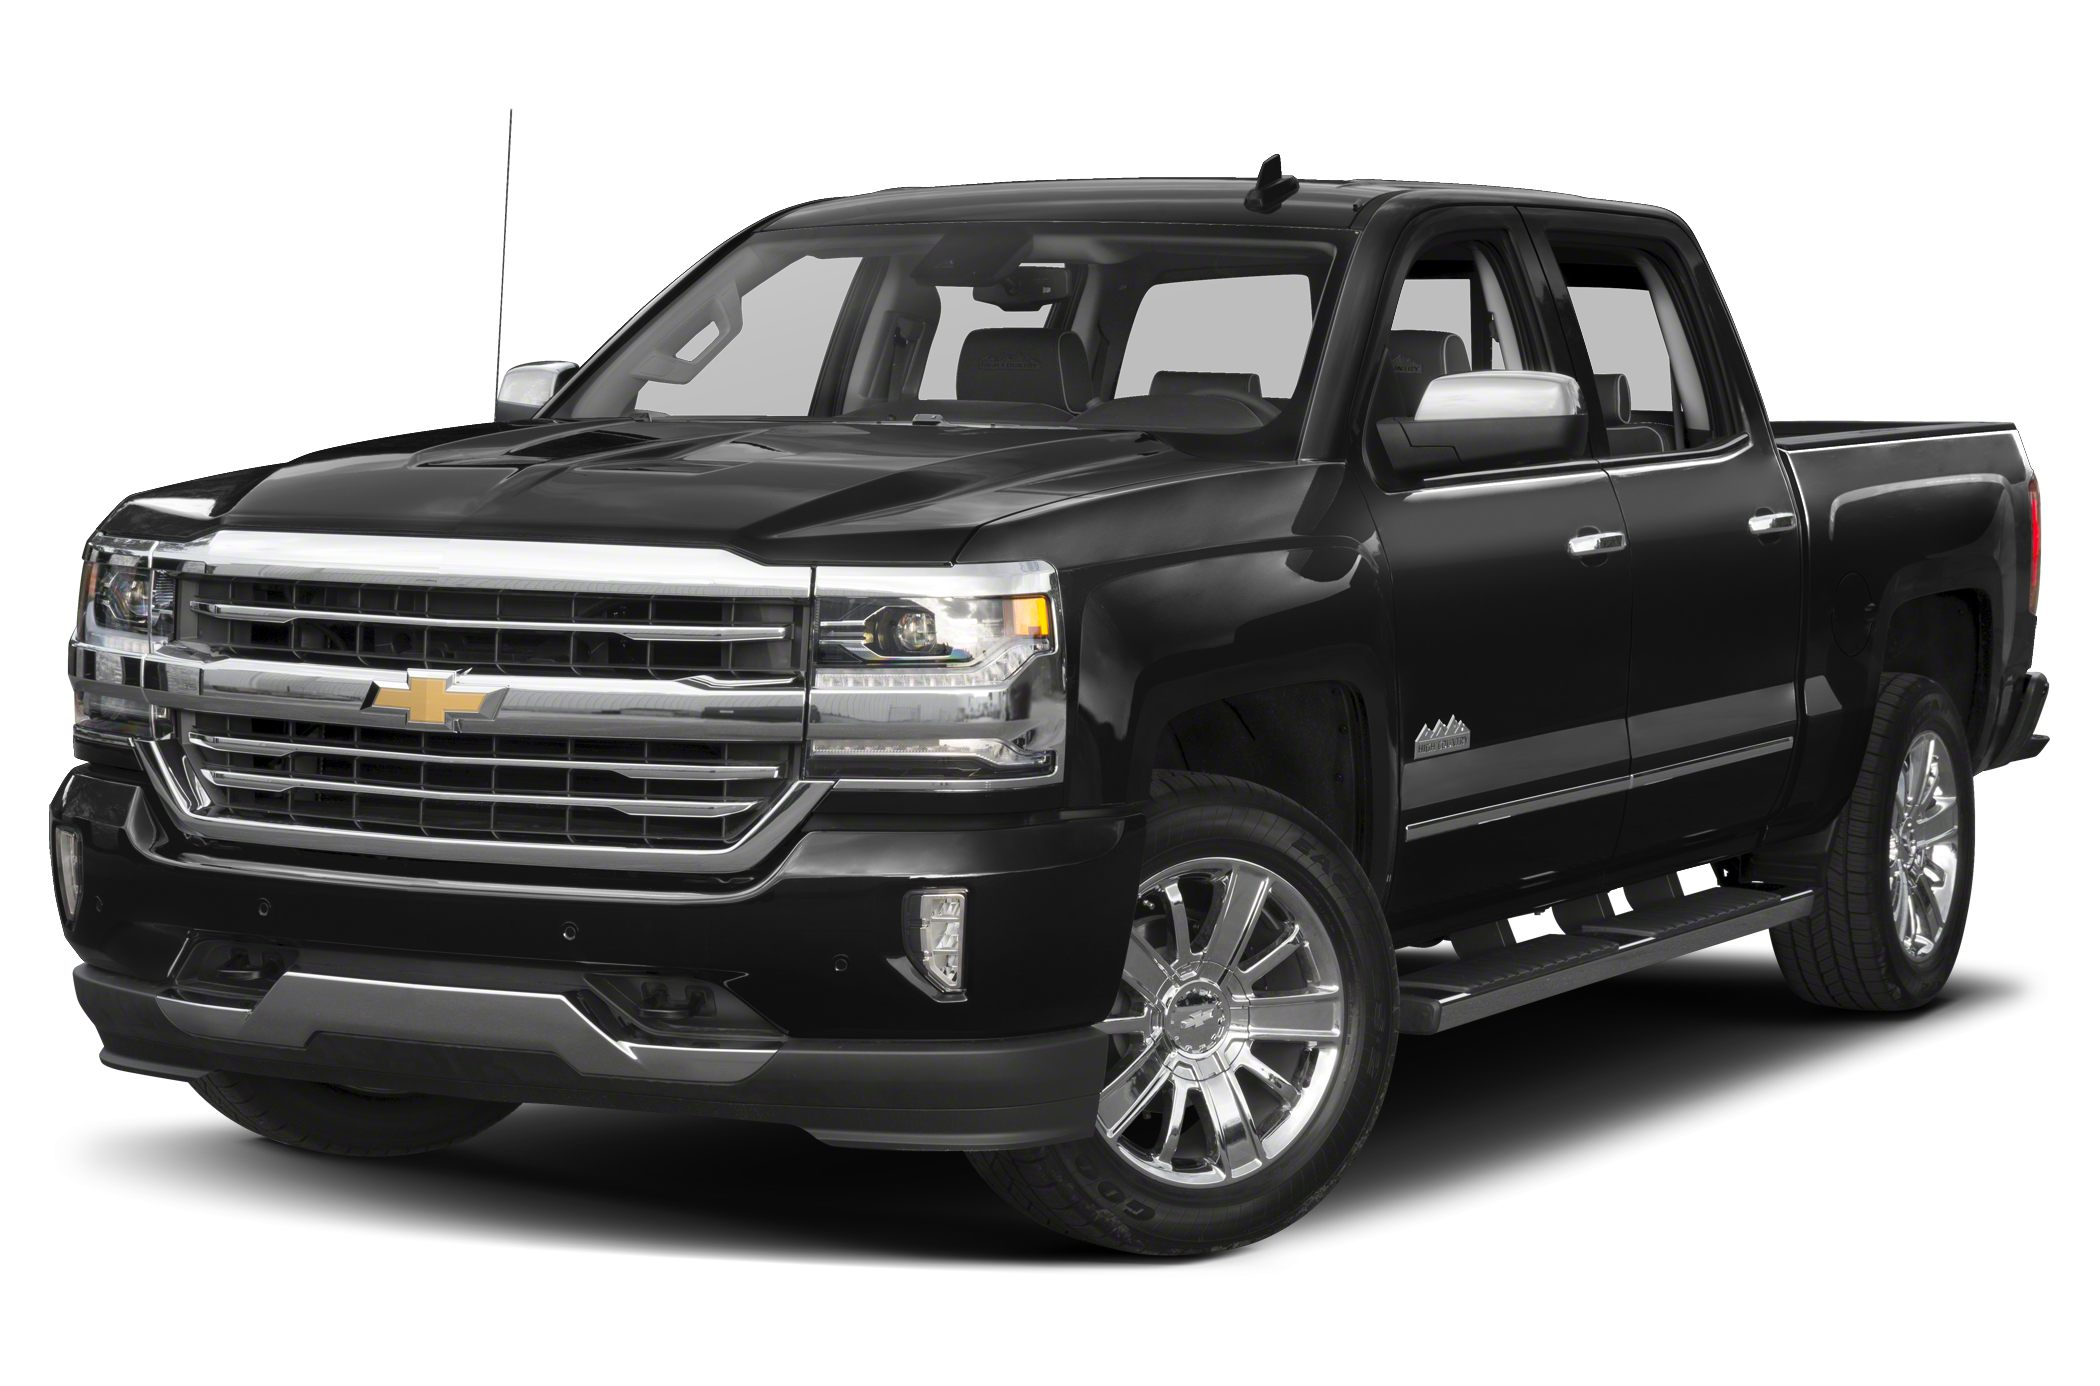 2018 Chevrolet Silverado 1500 High Country 4x4 Crew Cab 6.6 ft. box 153 in. WB